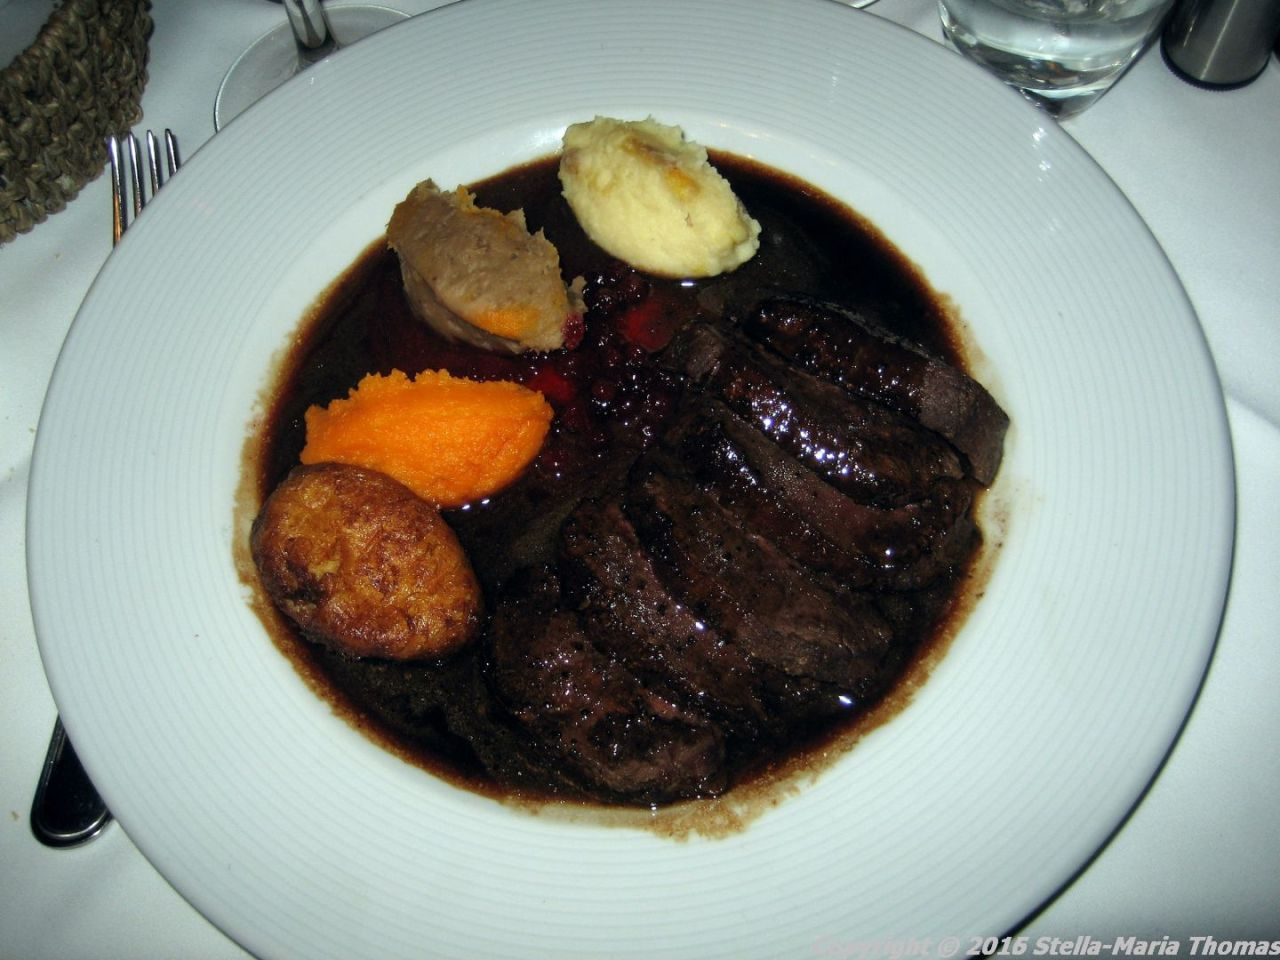 lestrille-du-vieux-bruxelles-venison-with-hunters-mousses-009_23427928909_o